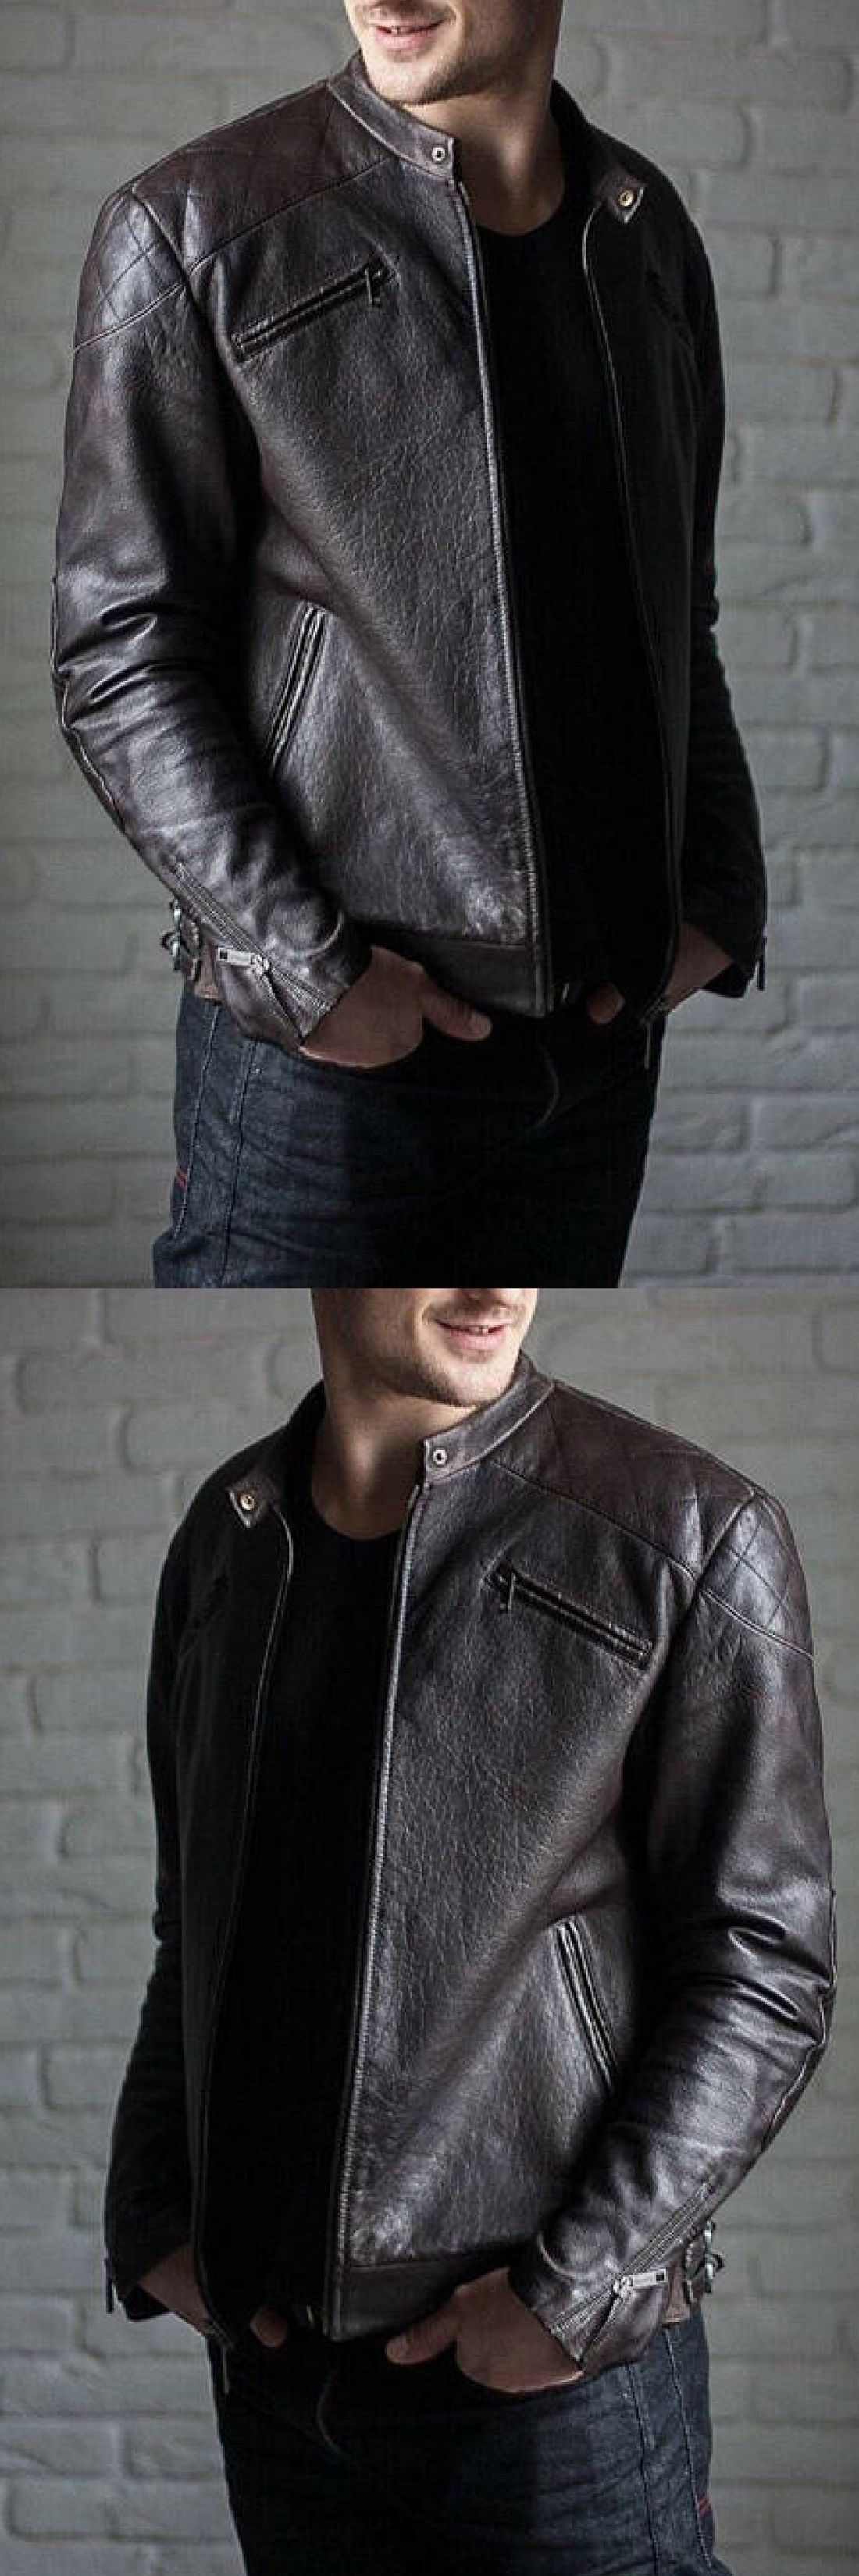 The Biker Jacket Is Made From High Quality Black Vintage Style Leather Shoulders And Back Side Of Sleeves Jackets Men Fashion Leather Jacket Mens Black Jacket [ 3300 x 1100 Pixel ]